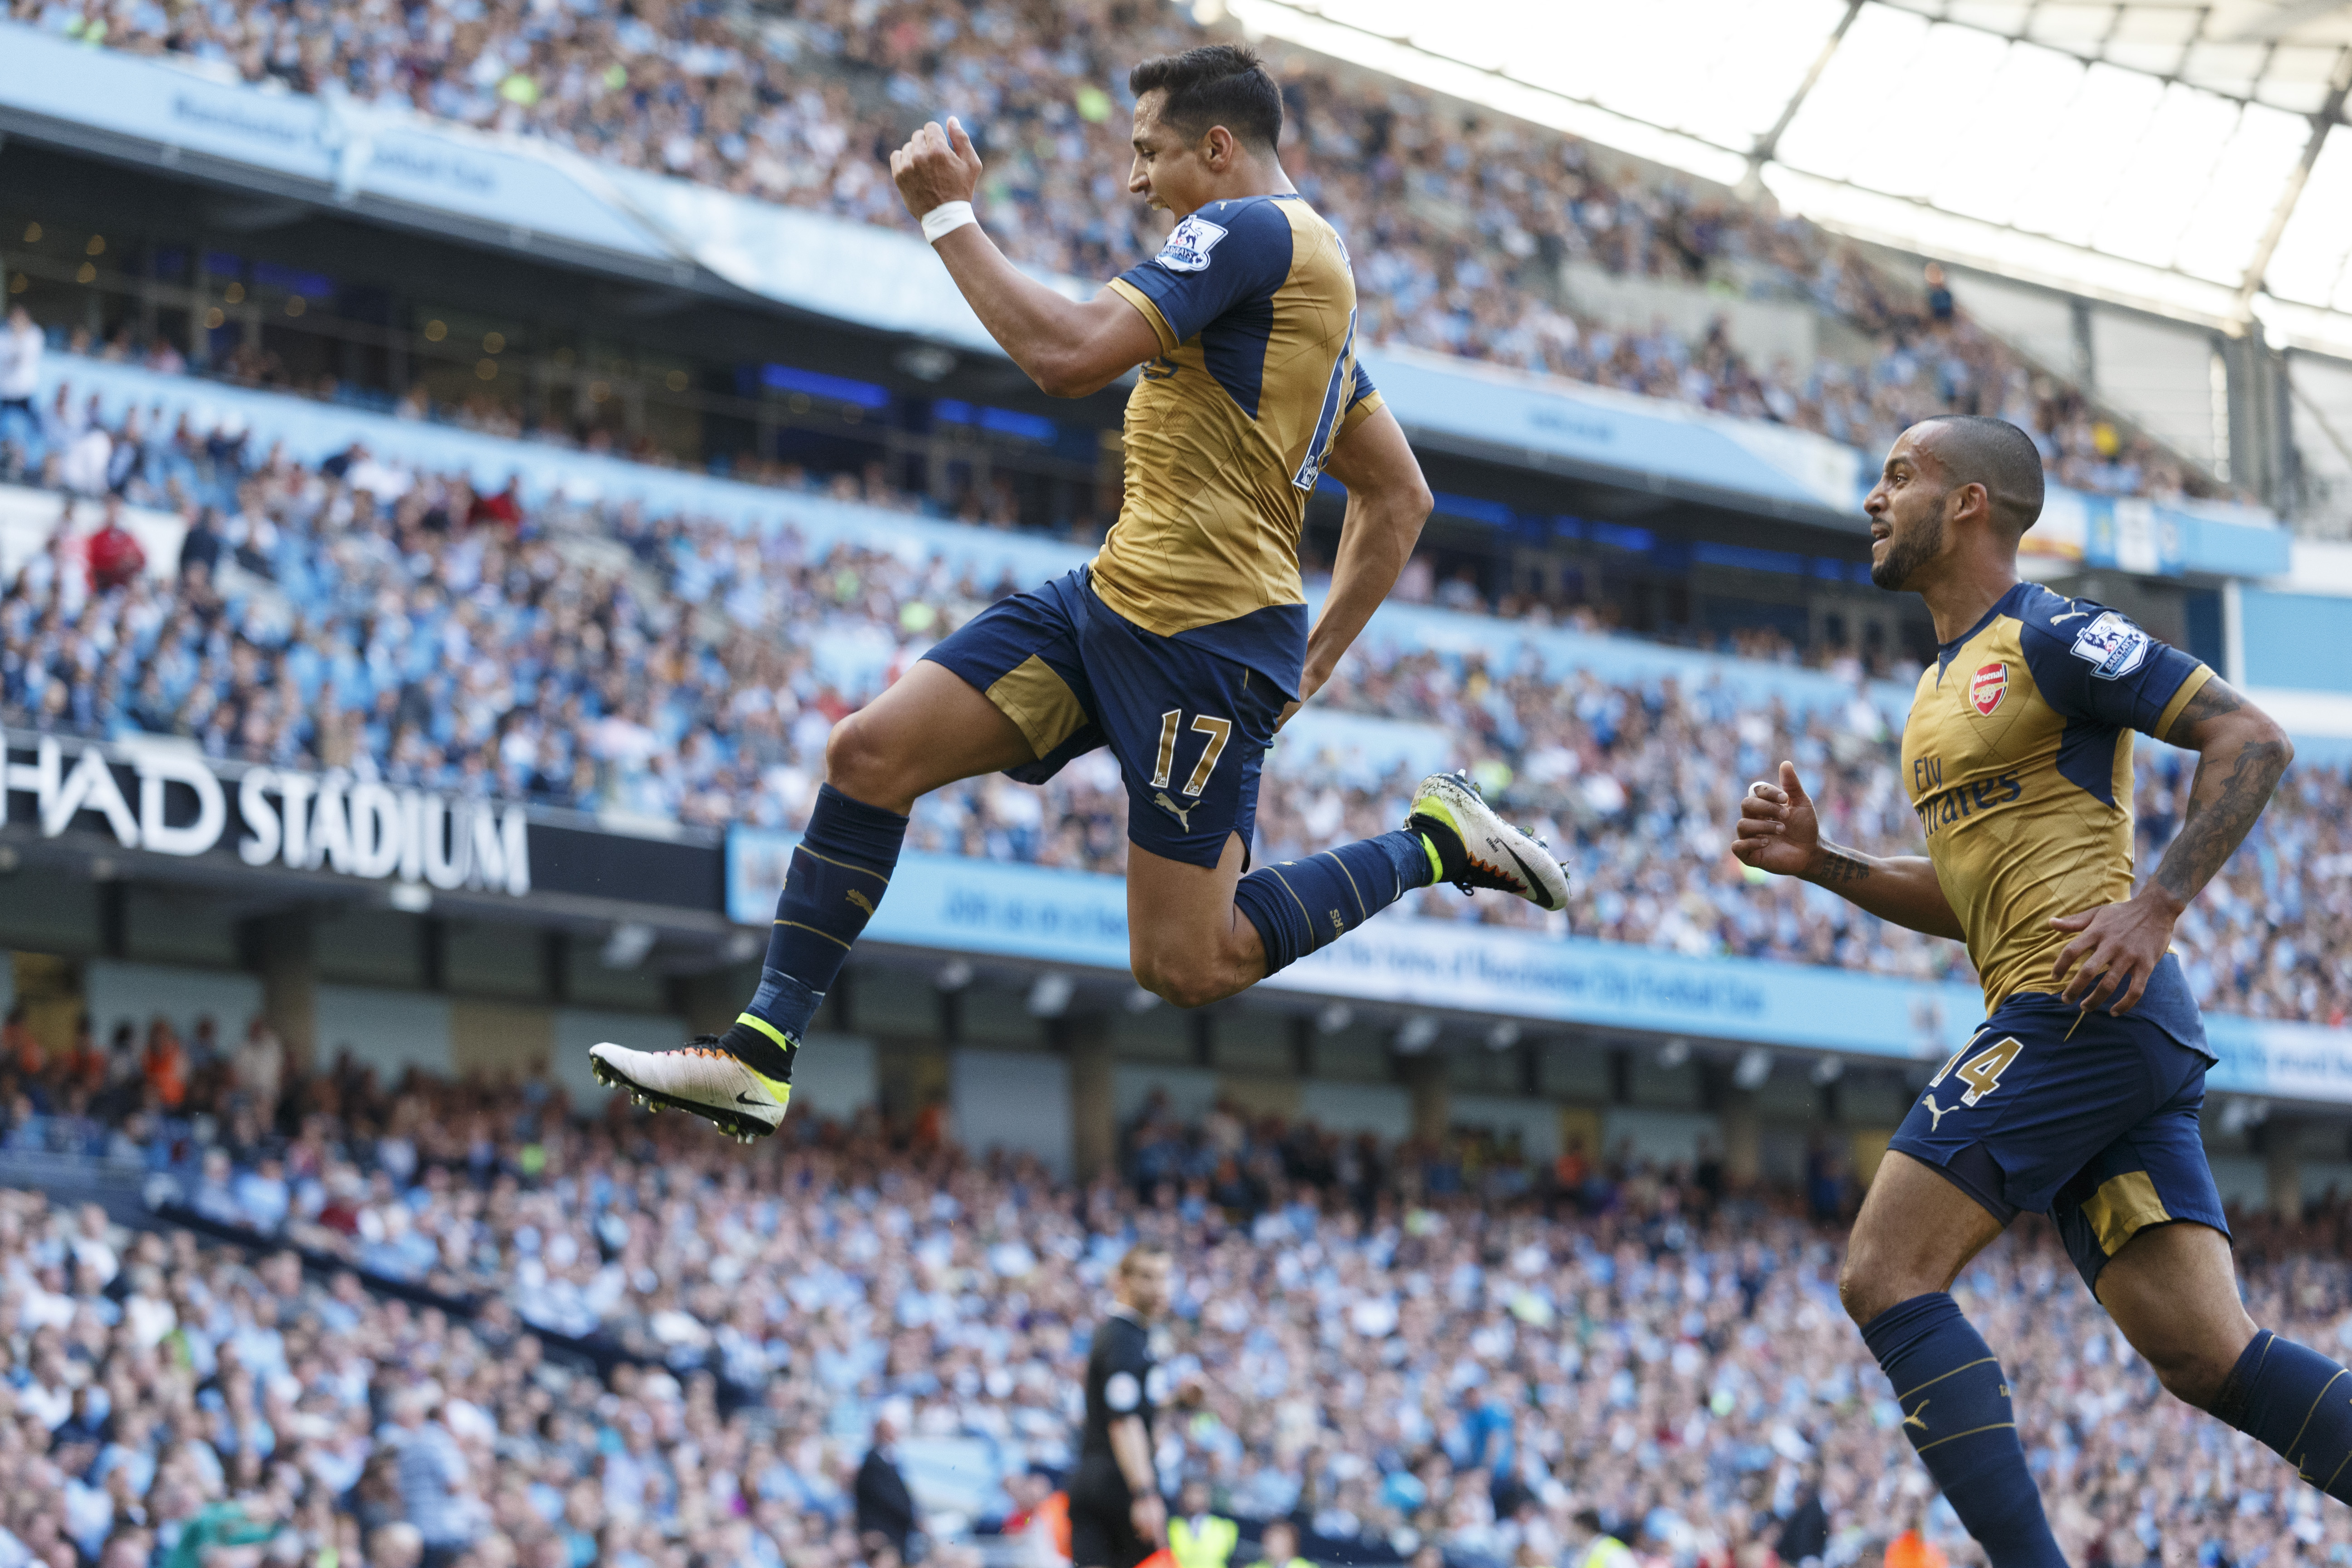 MANCHESTER, ENGLAND - MAY 08: Alexis Sanchez of Arsenal celebrates after scoring a goal to make it 2-2 during the Barclays Premier League match between Manchester City and Arsenal at the Ethiad Stadium on May 1, 2016 in Manchester, United Kingdom. (Photo by Matthew Ashton - AMA/Getty Images)